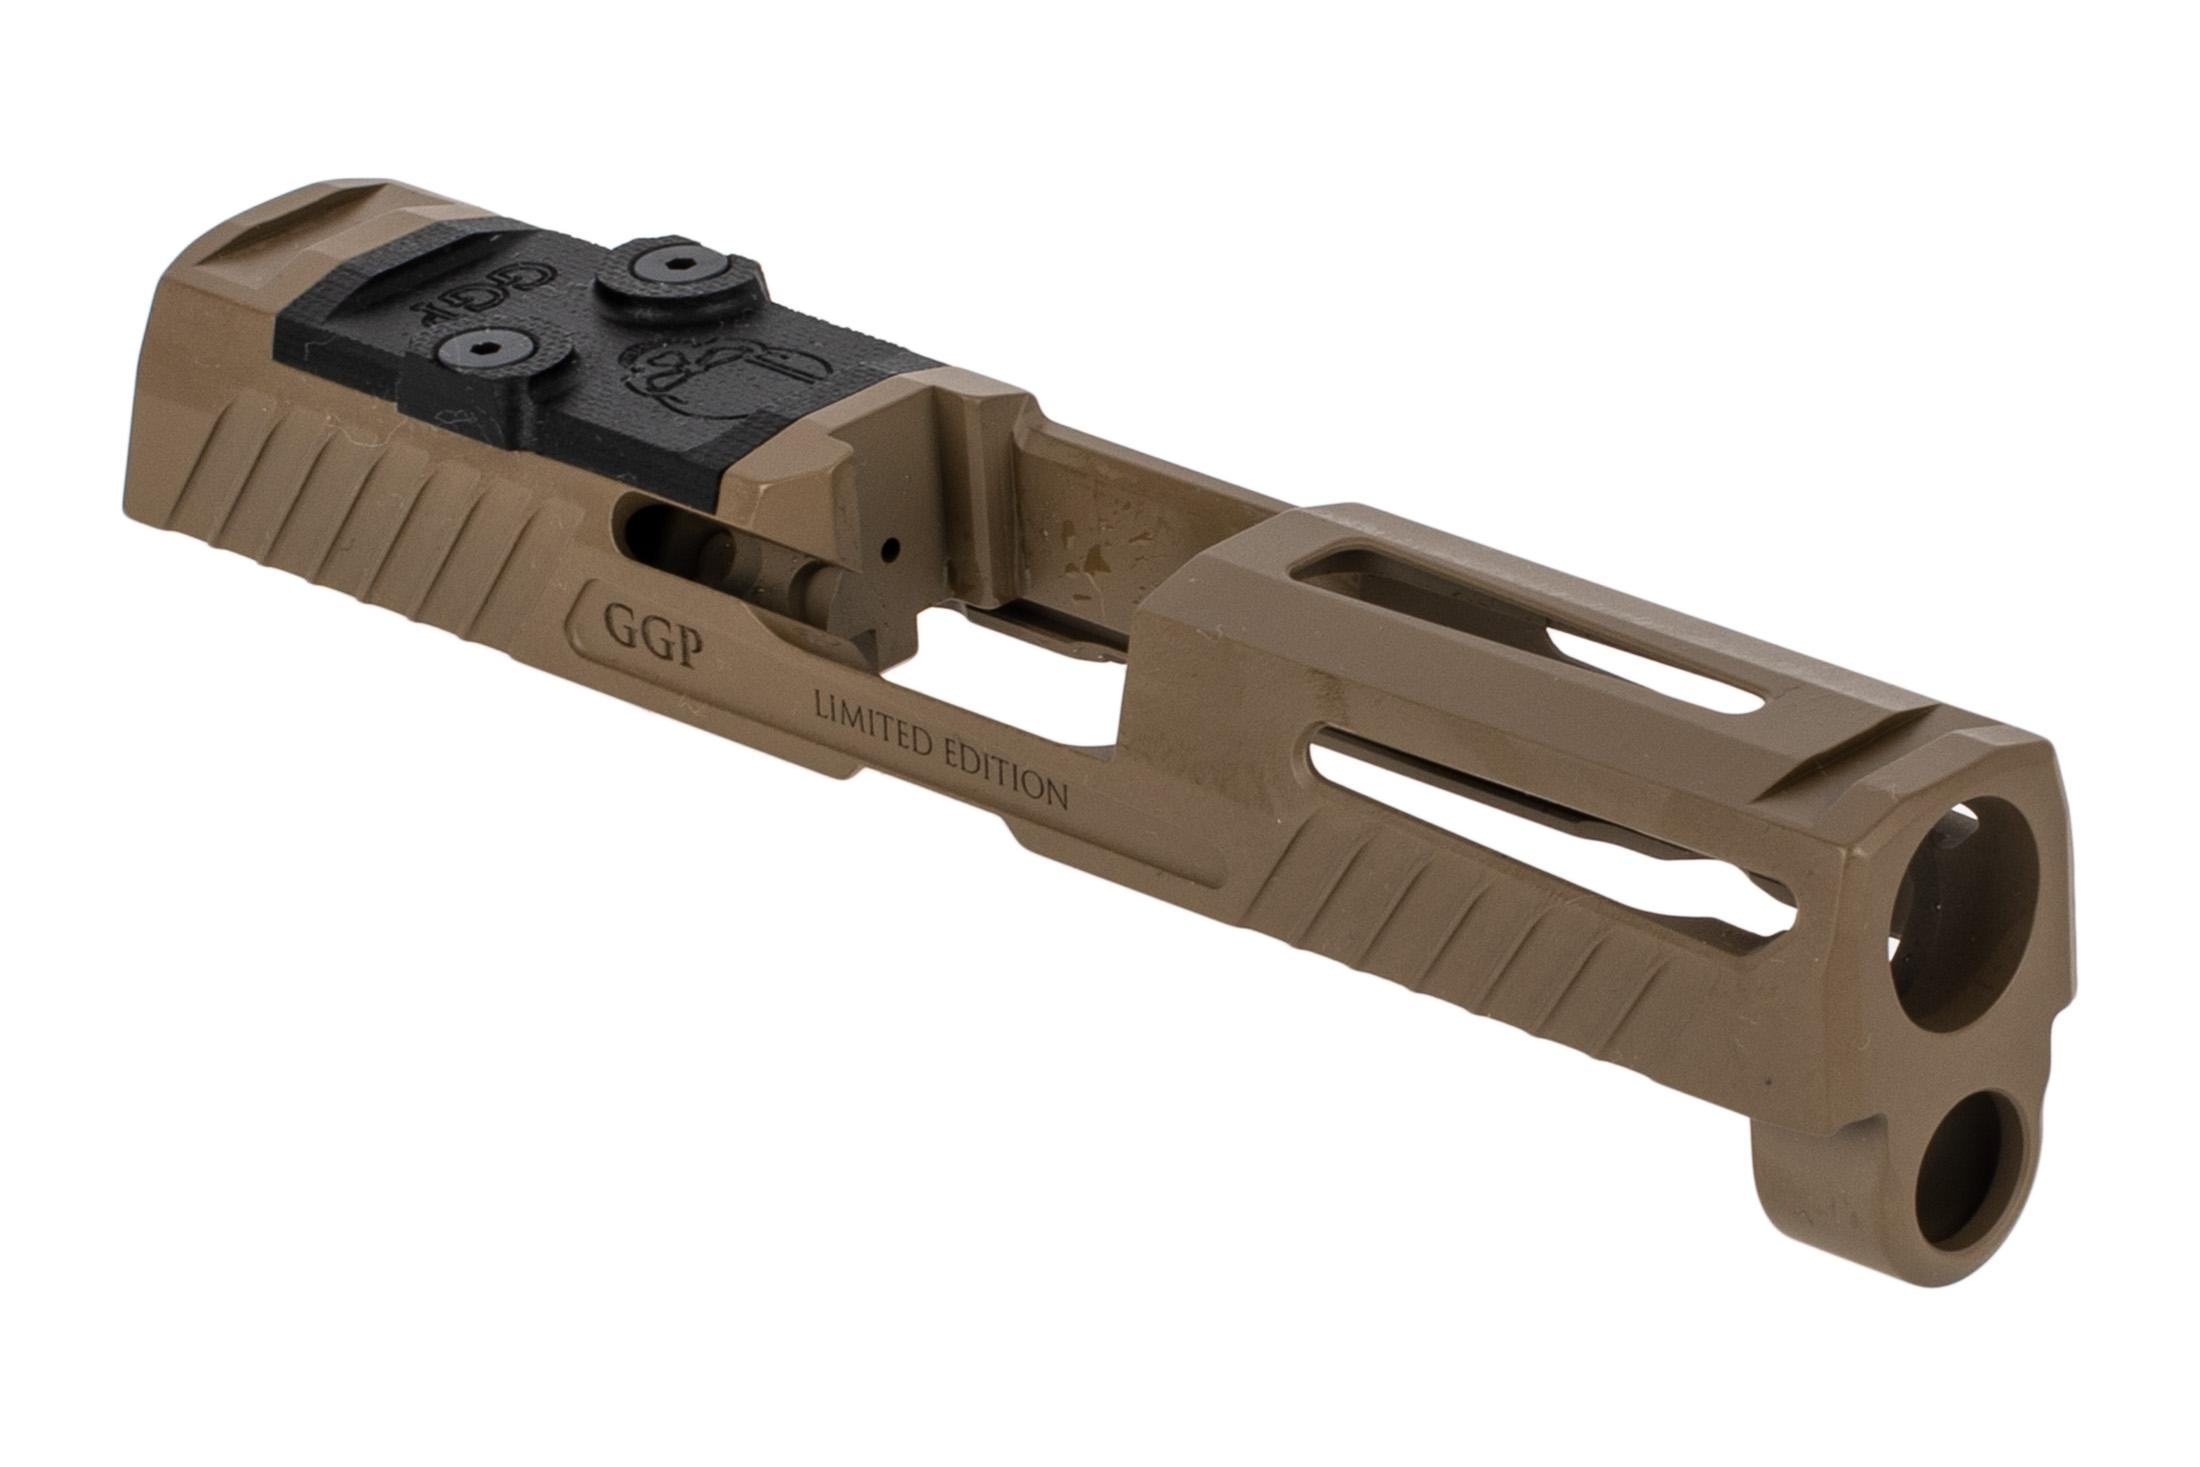 Grey Ghost Precision V1 slide for the SIG Sauer P320 Compacy features a slick FDE finish.